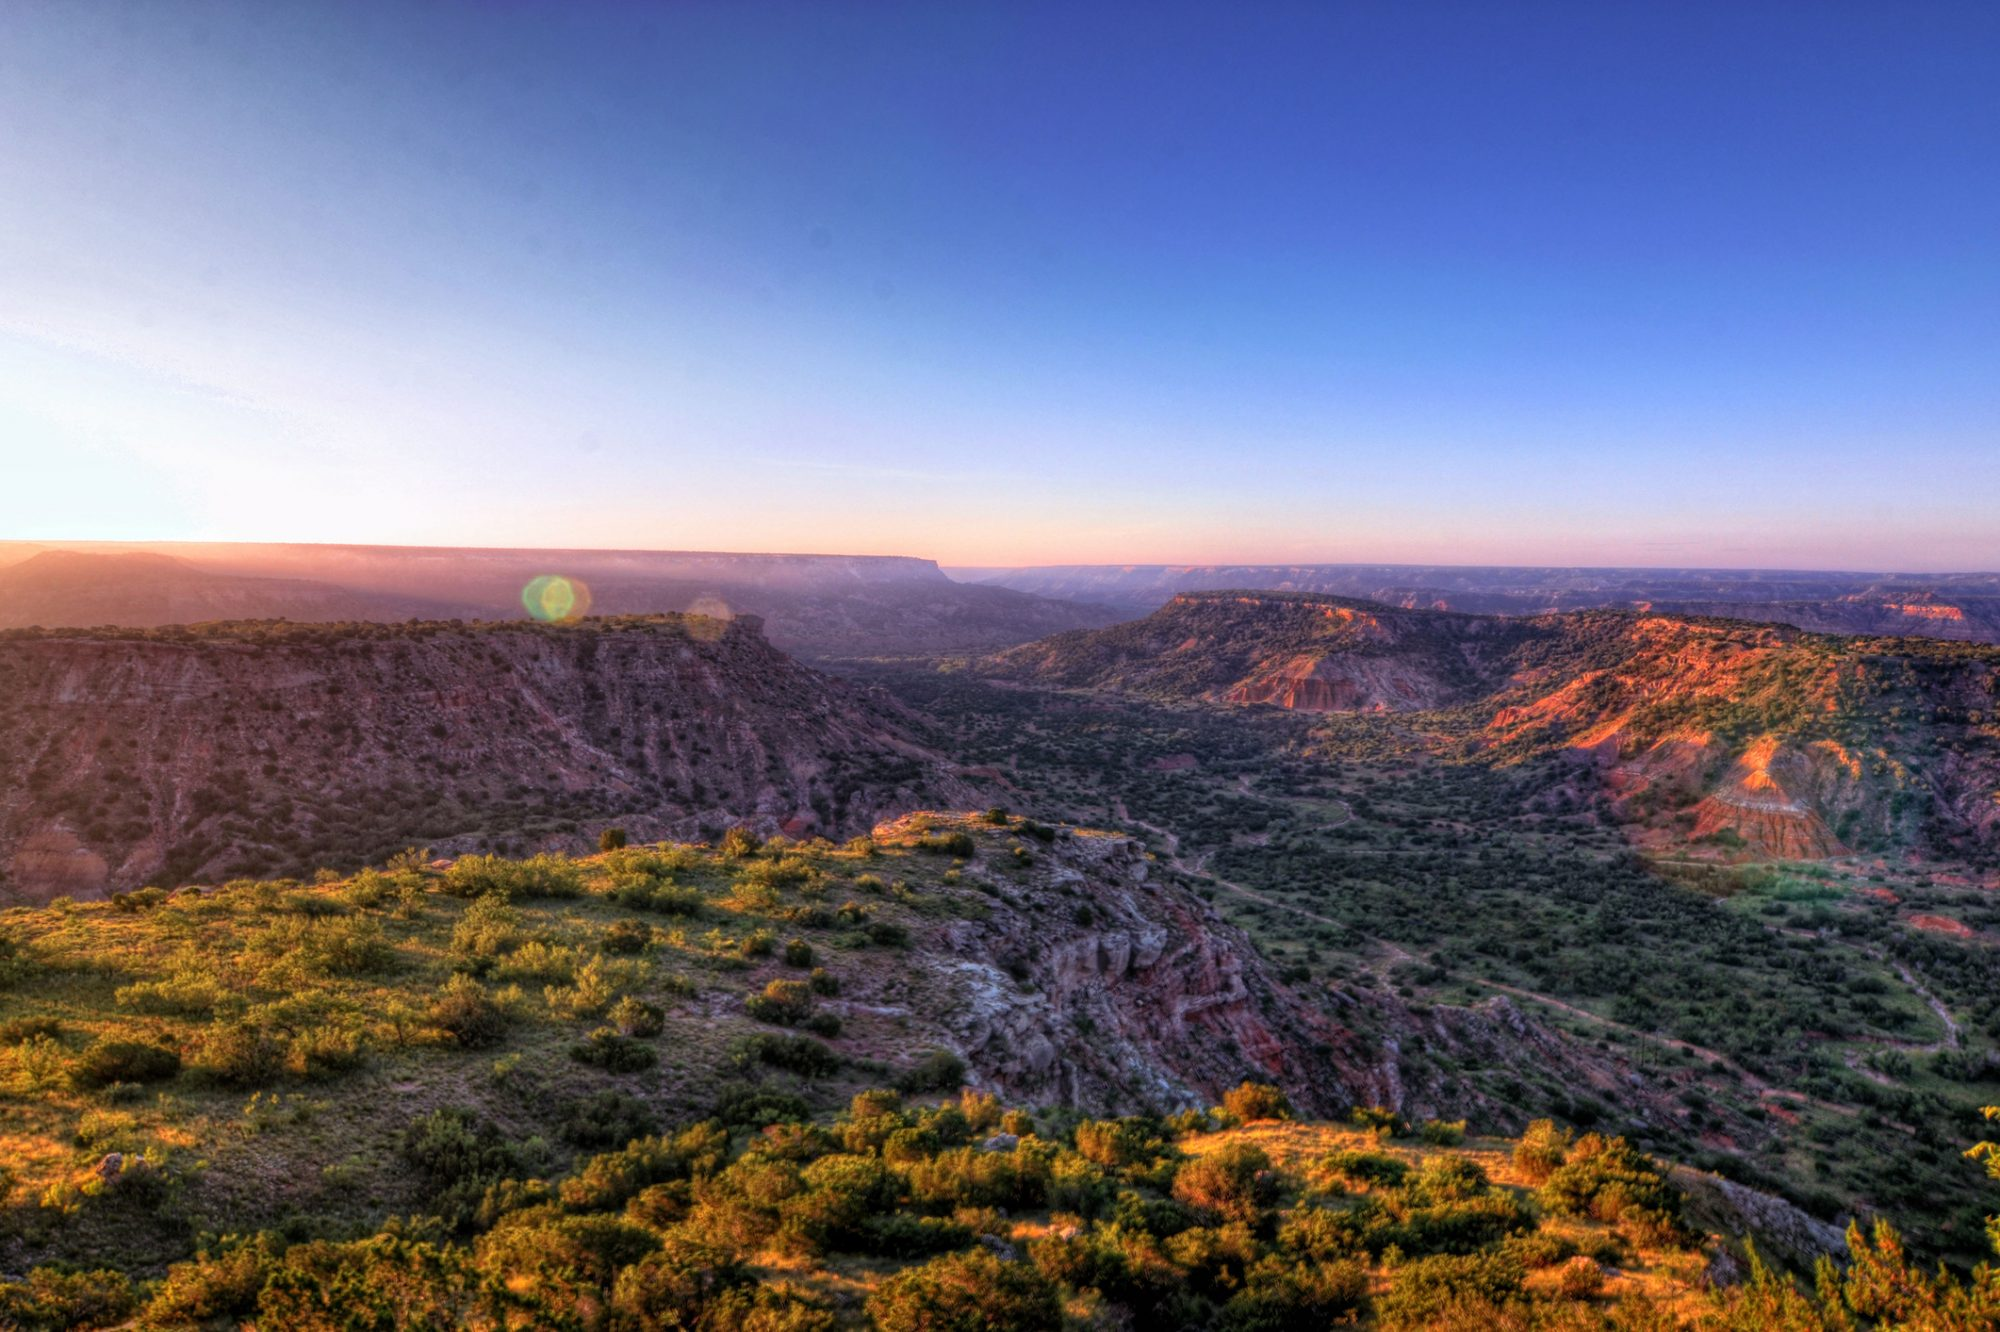 Palo Duro Canyon in Texas